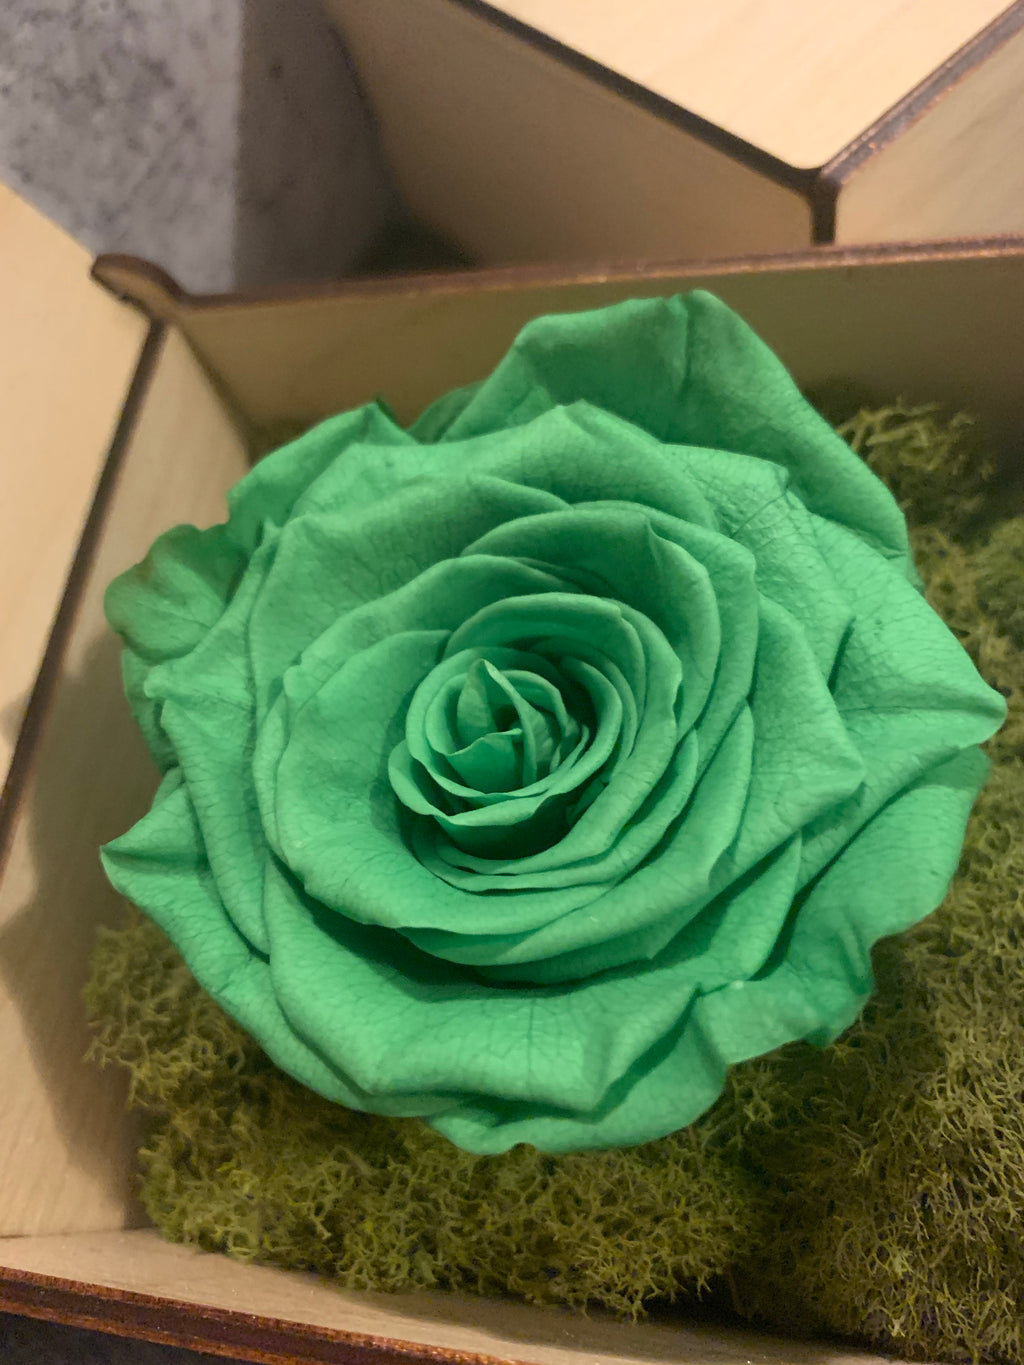 GREEN ROSE, LIMITED EDITION